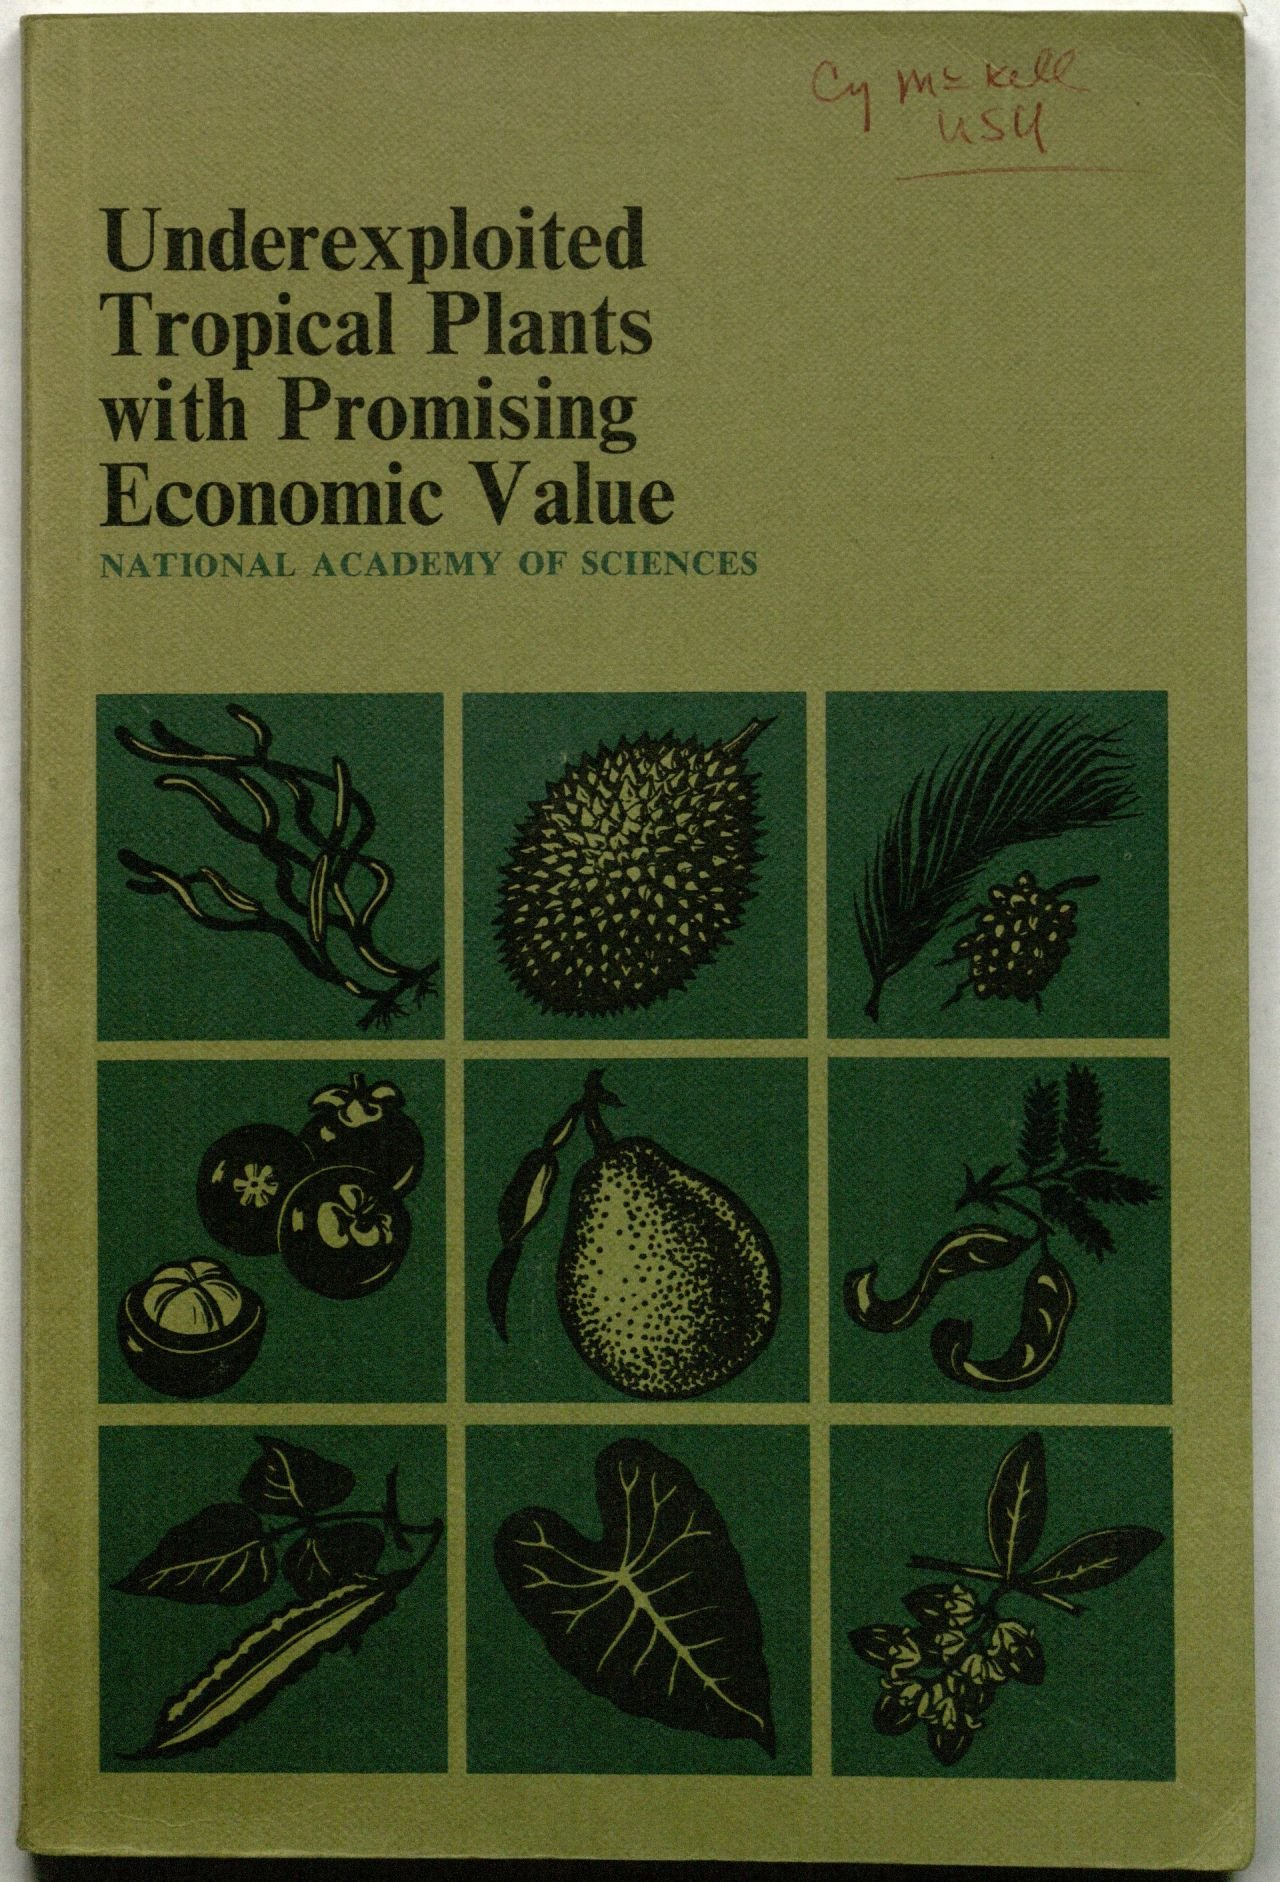 Underexploited Tropical Plants with Promising Economic Value, Ad Hoc Panel of Advisory Committee on Technology Innovation